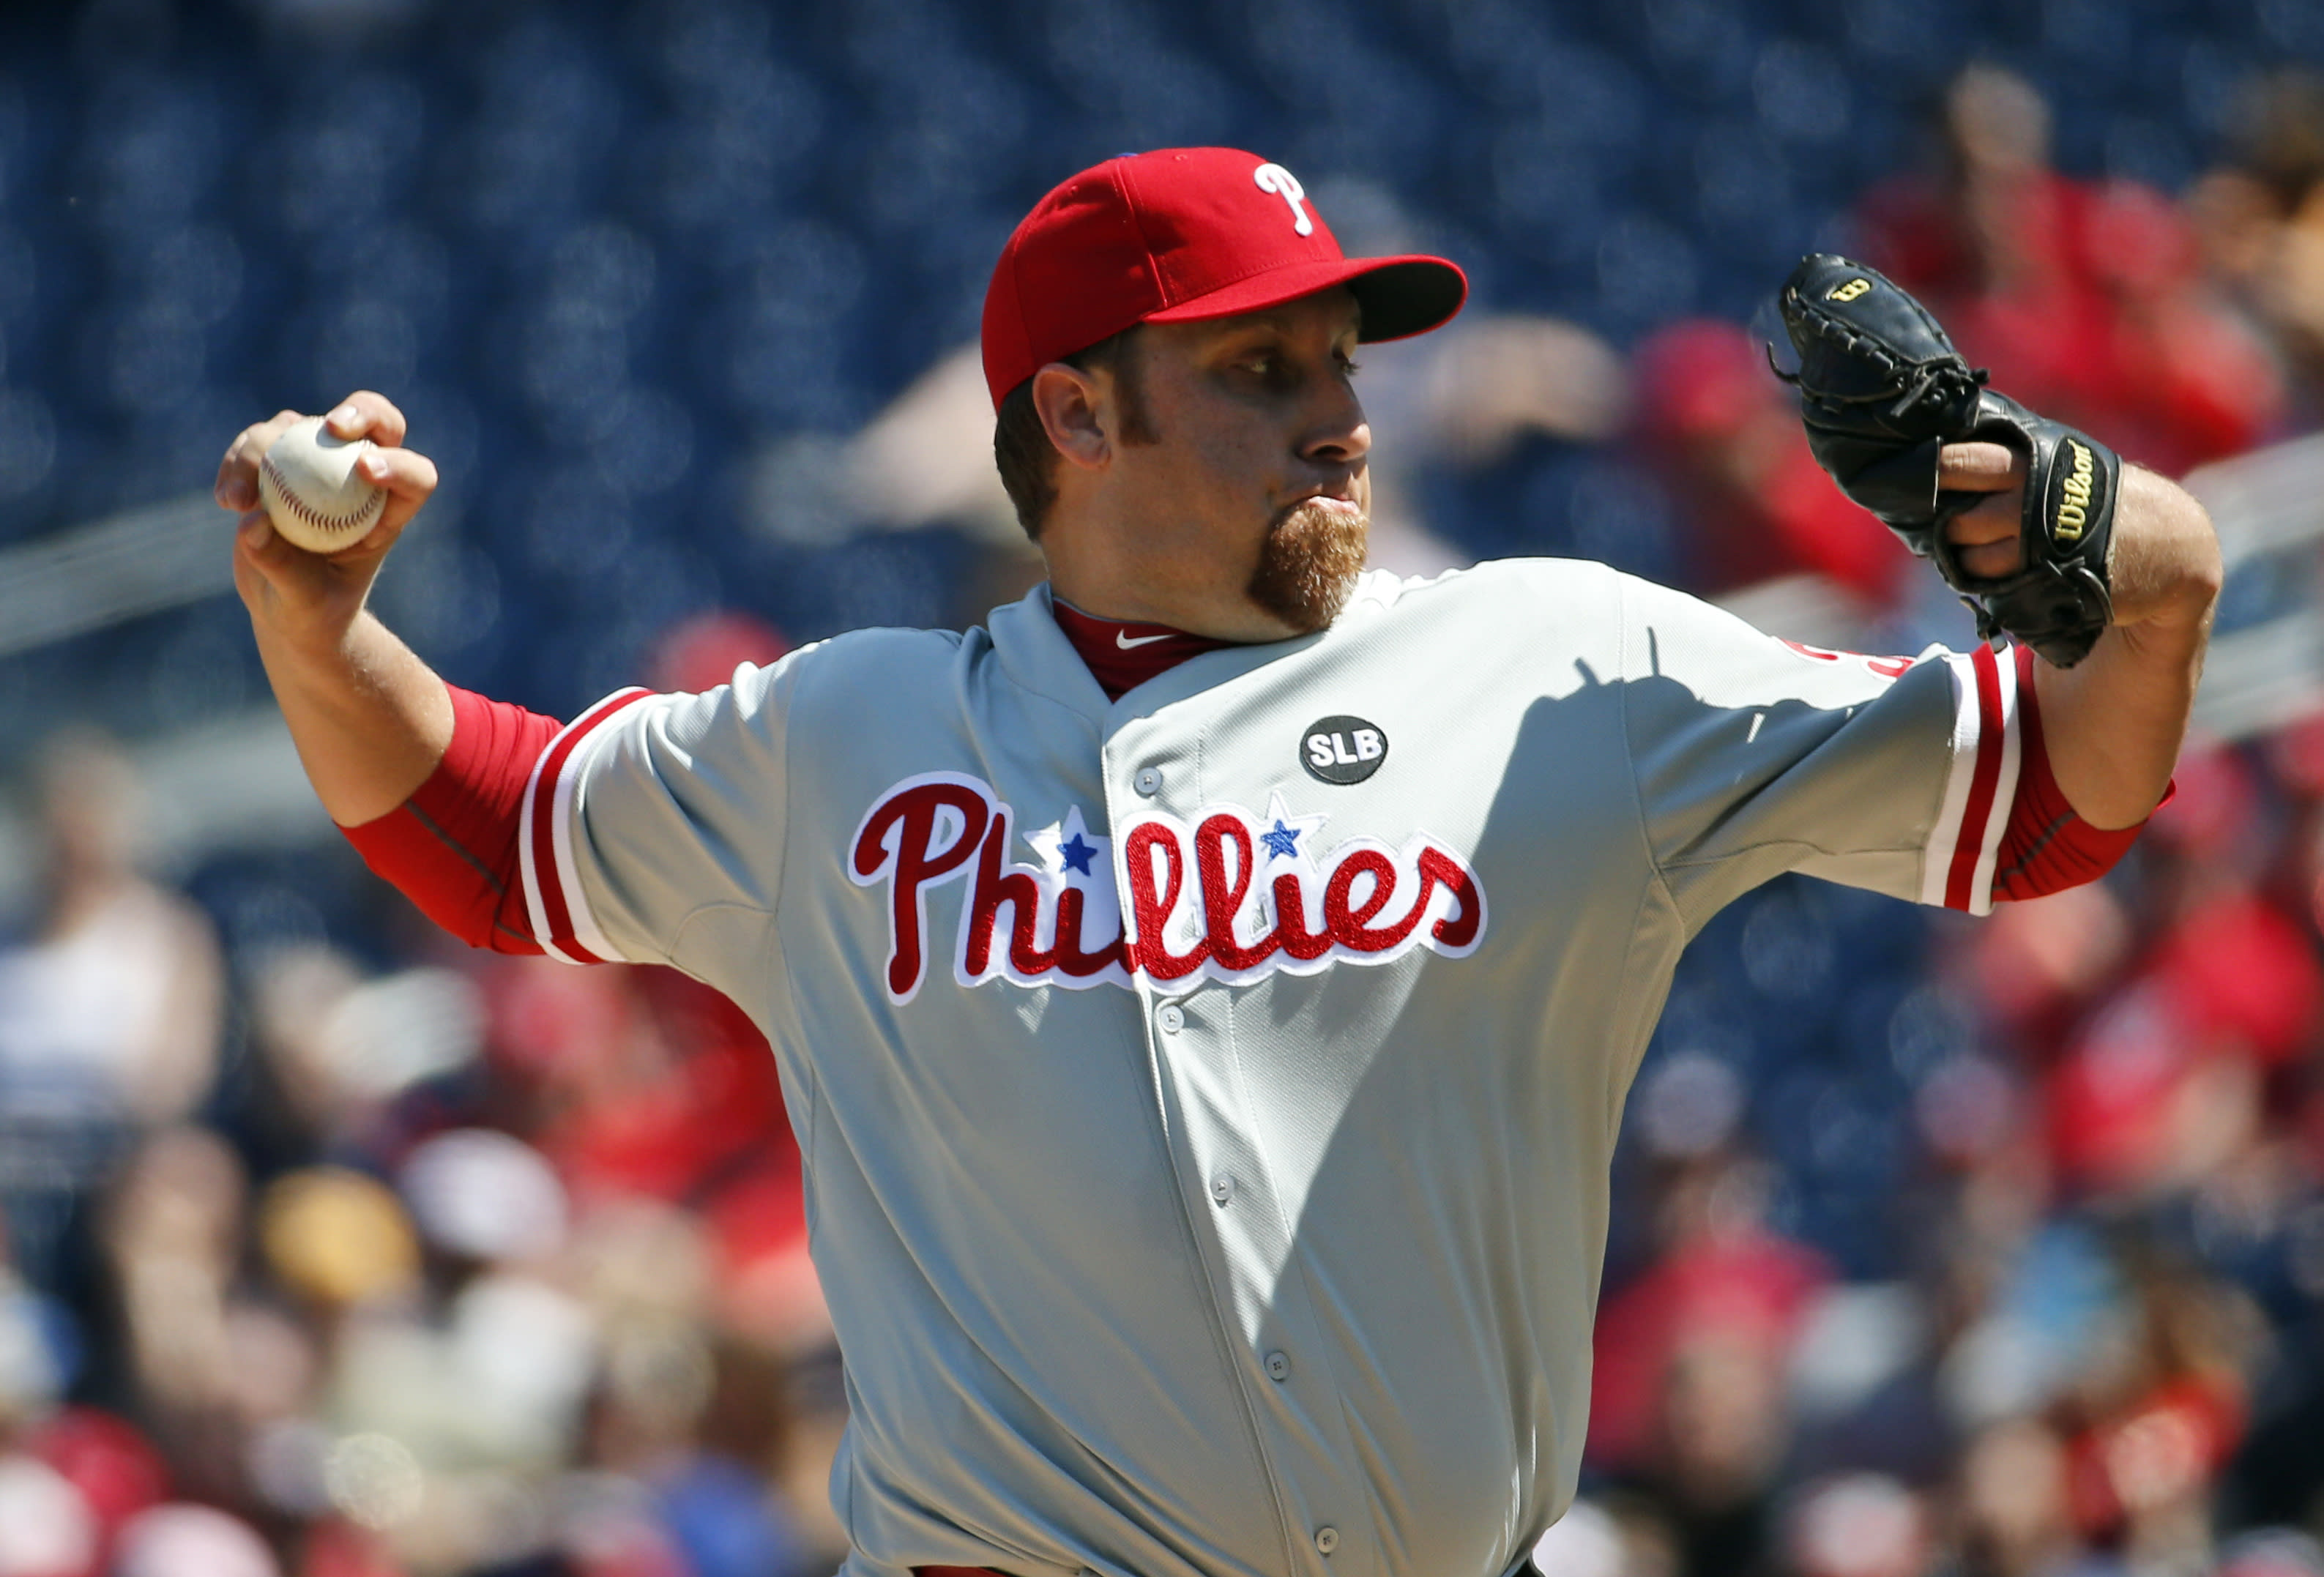 Phillies snap 6-game skid, defeat Nationals 5-3